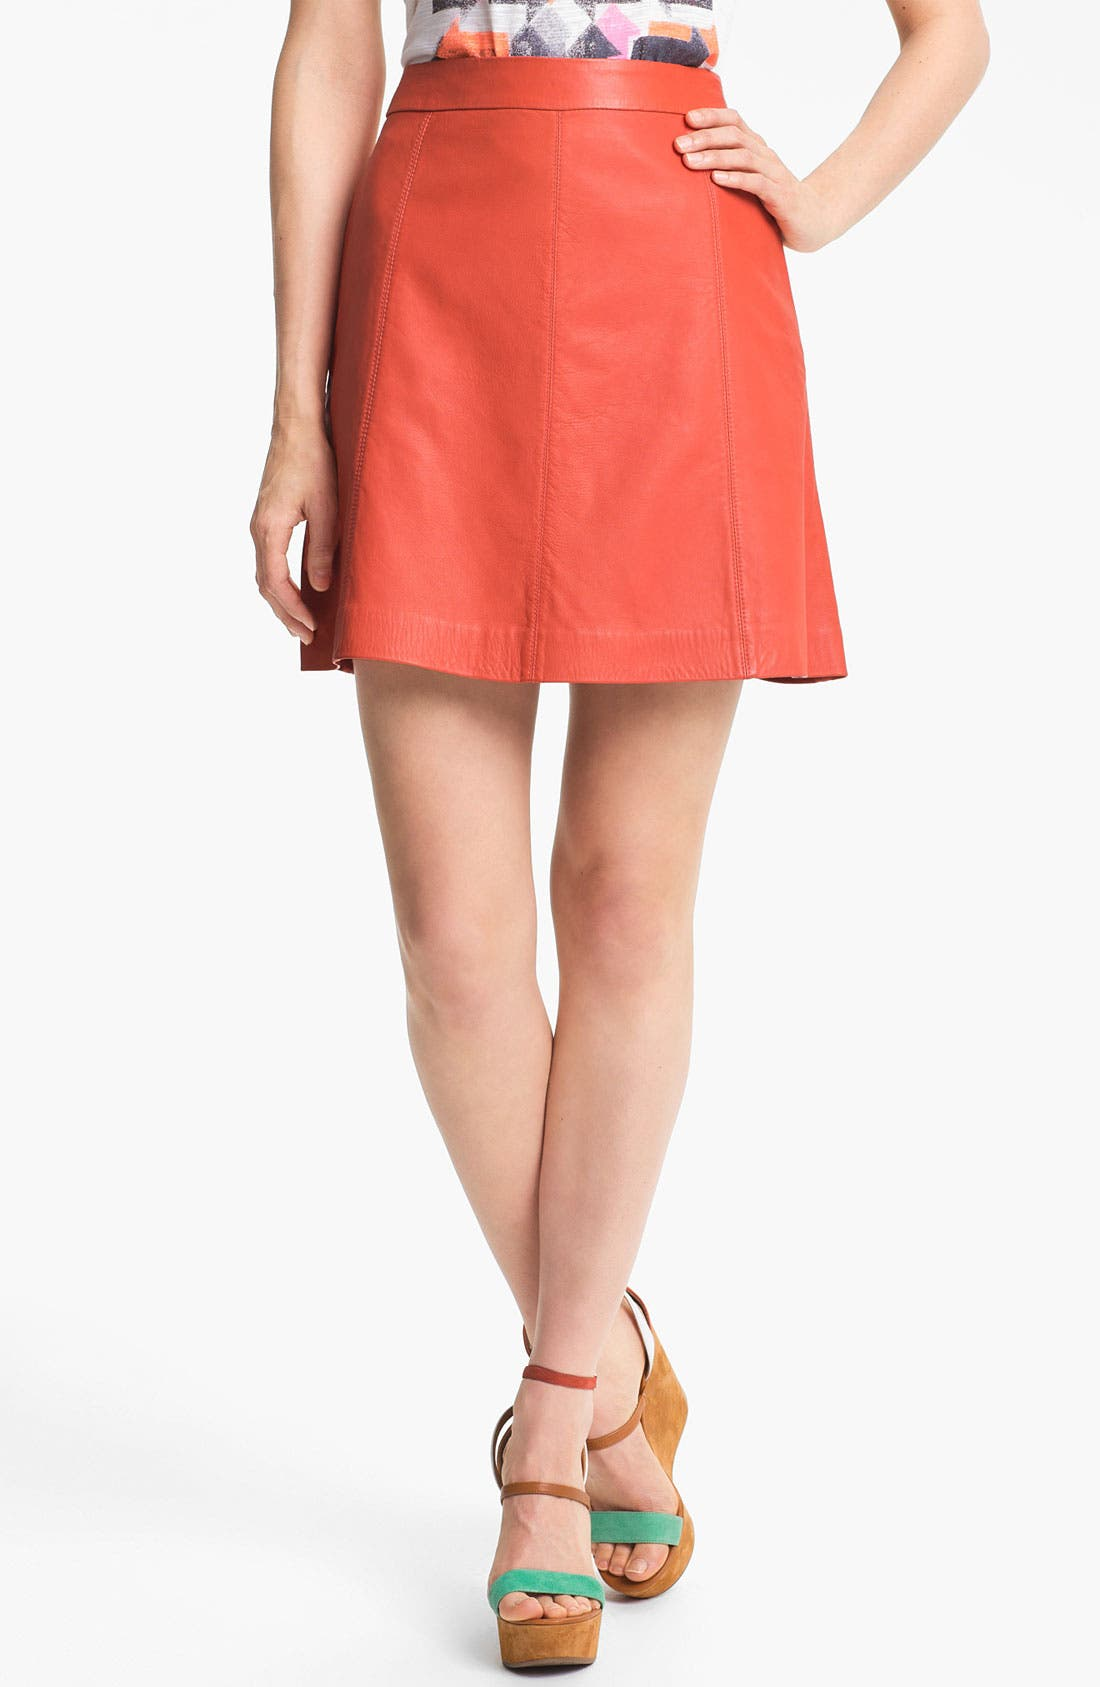 Alternate Image 1 Selected - MARC BY MARC JACOBS 'Jett' Leather Skirt